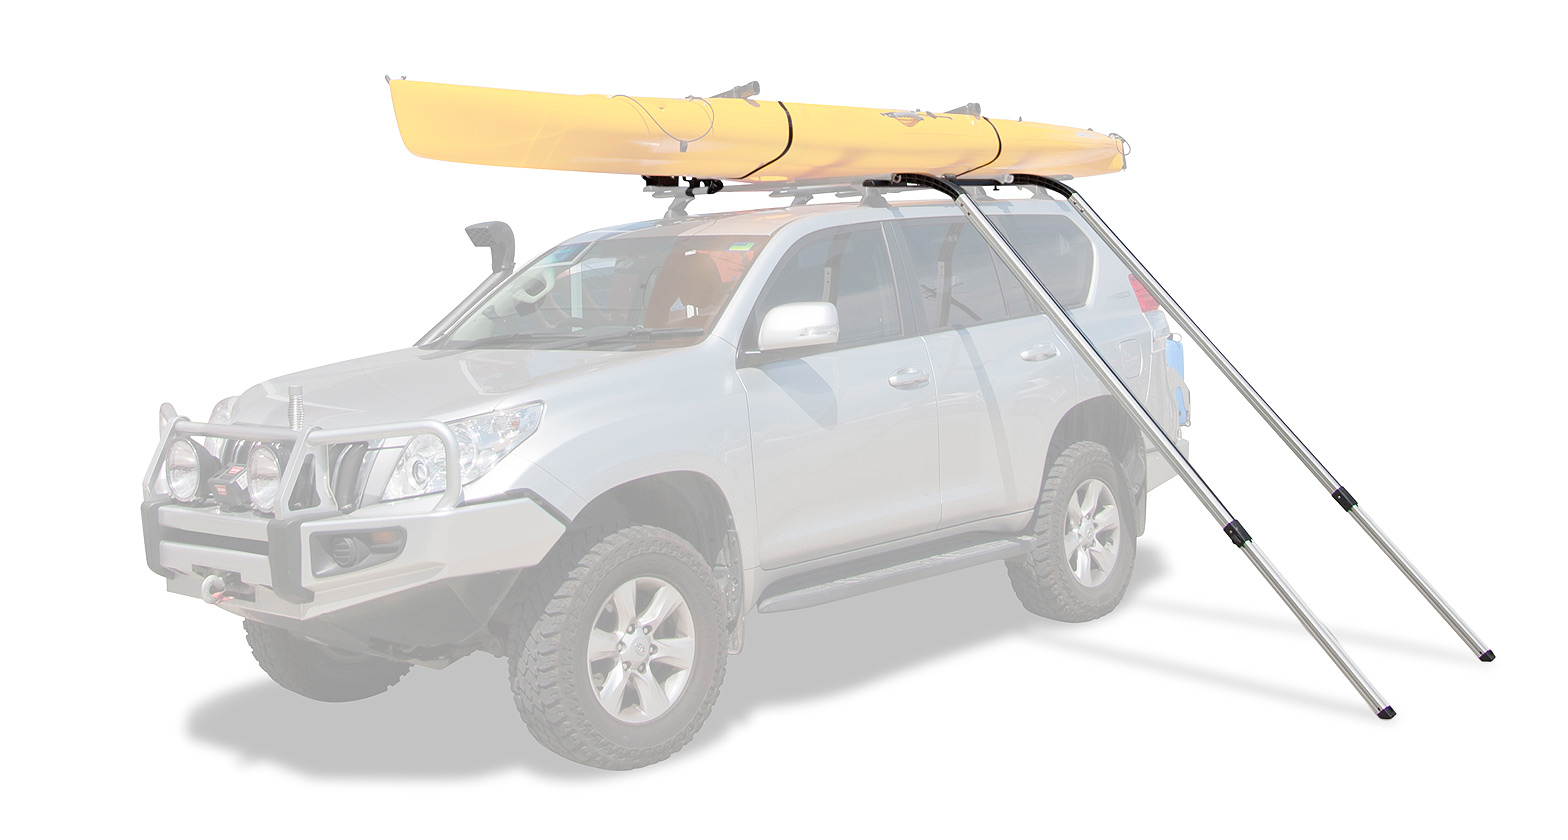 thule roof best malone to use racks inspirations for without suv on rack kayak awesome how kayaks image